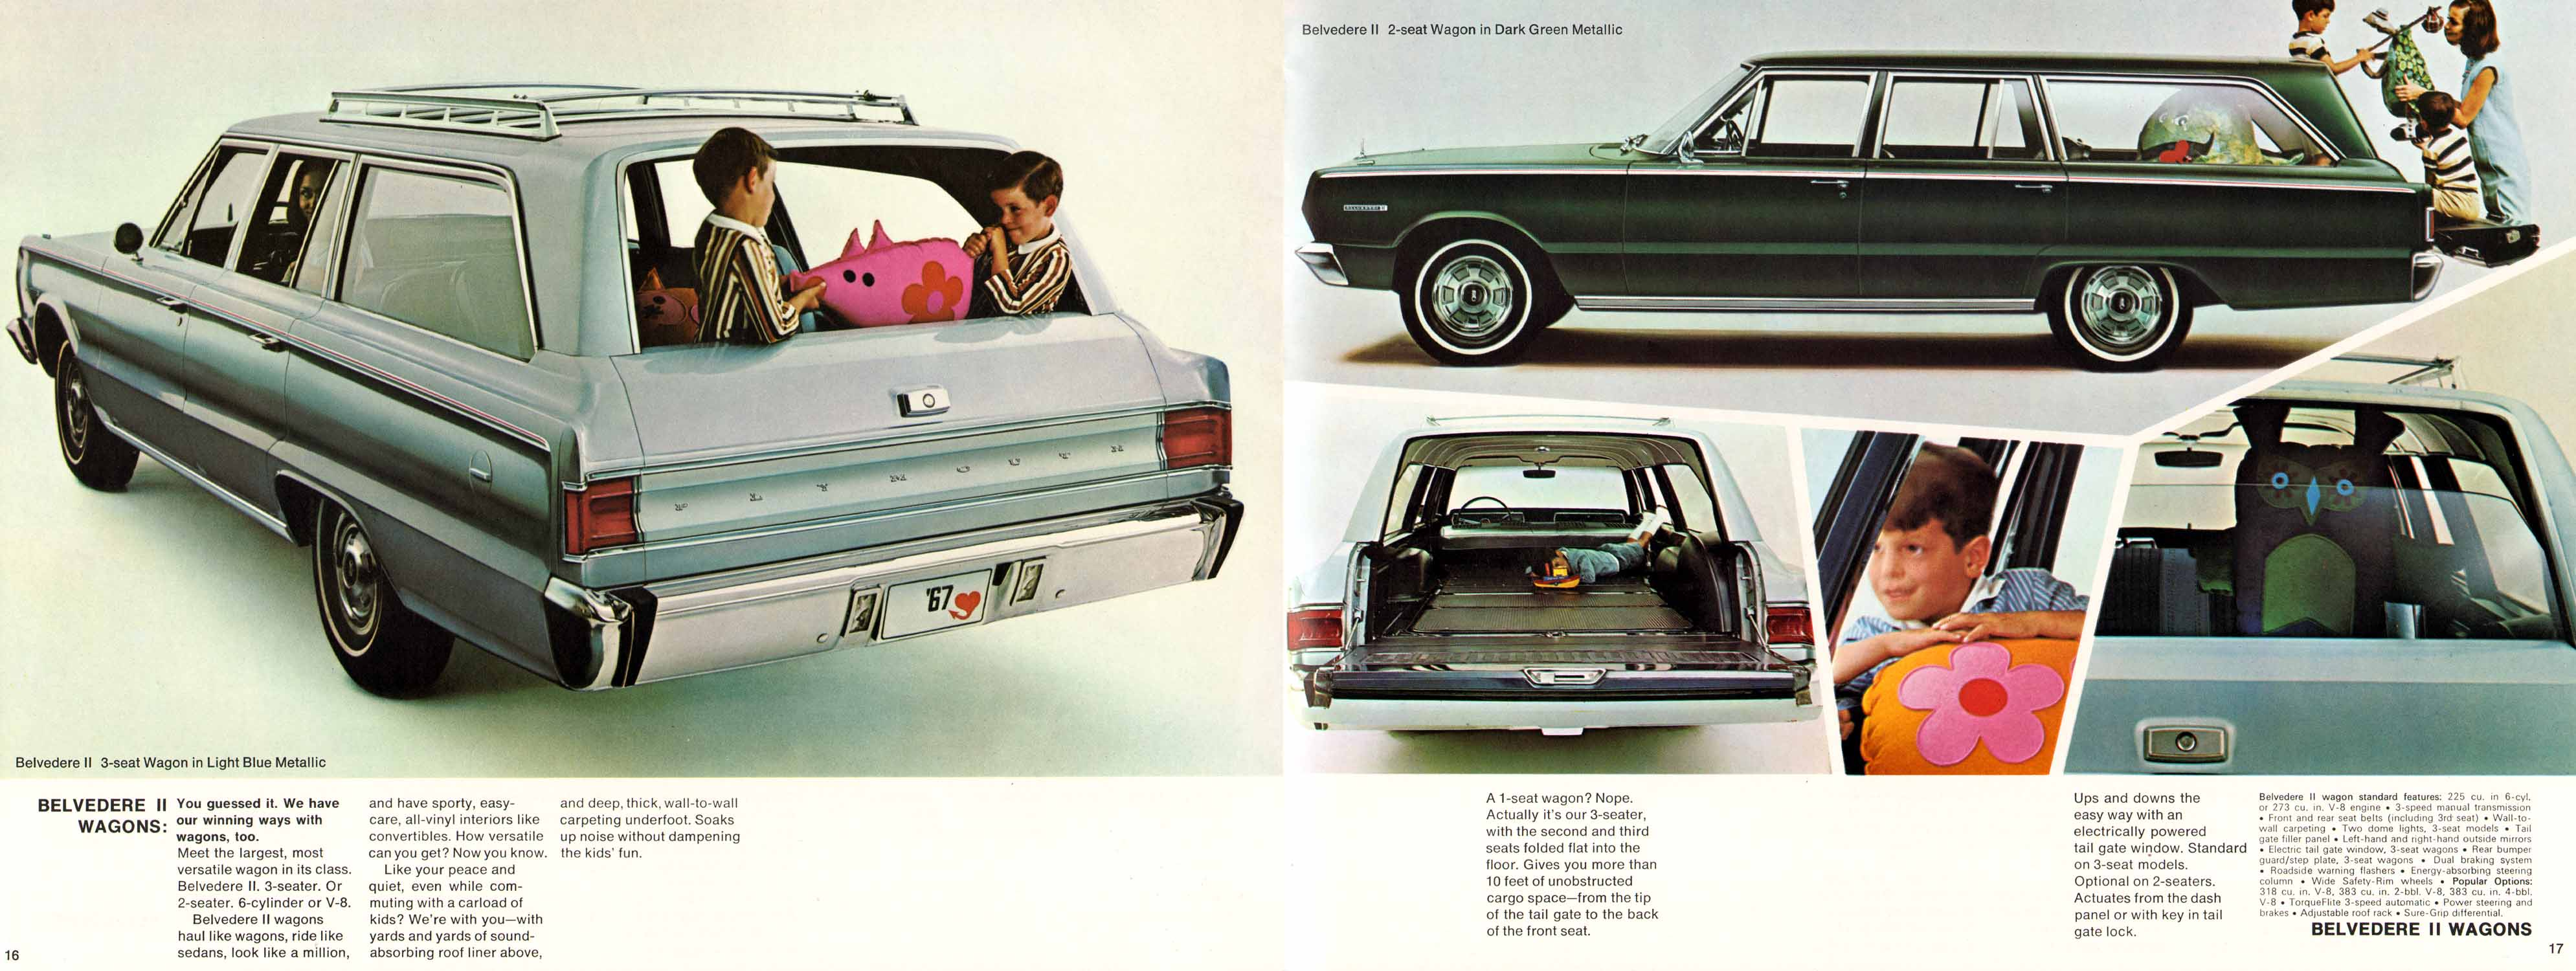 Old Car Dealers >> Image: 1967 Plymouth Belvedere/1967 Plymouth Belvedere-16-17